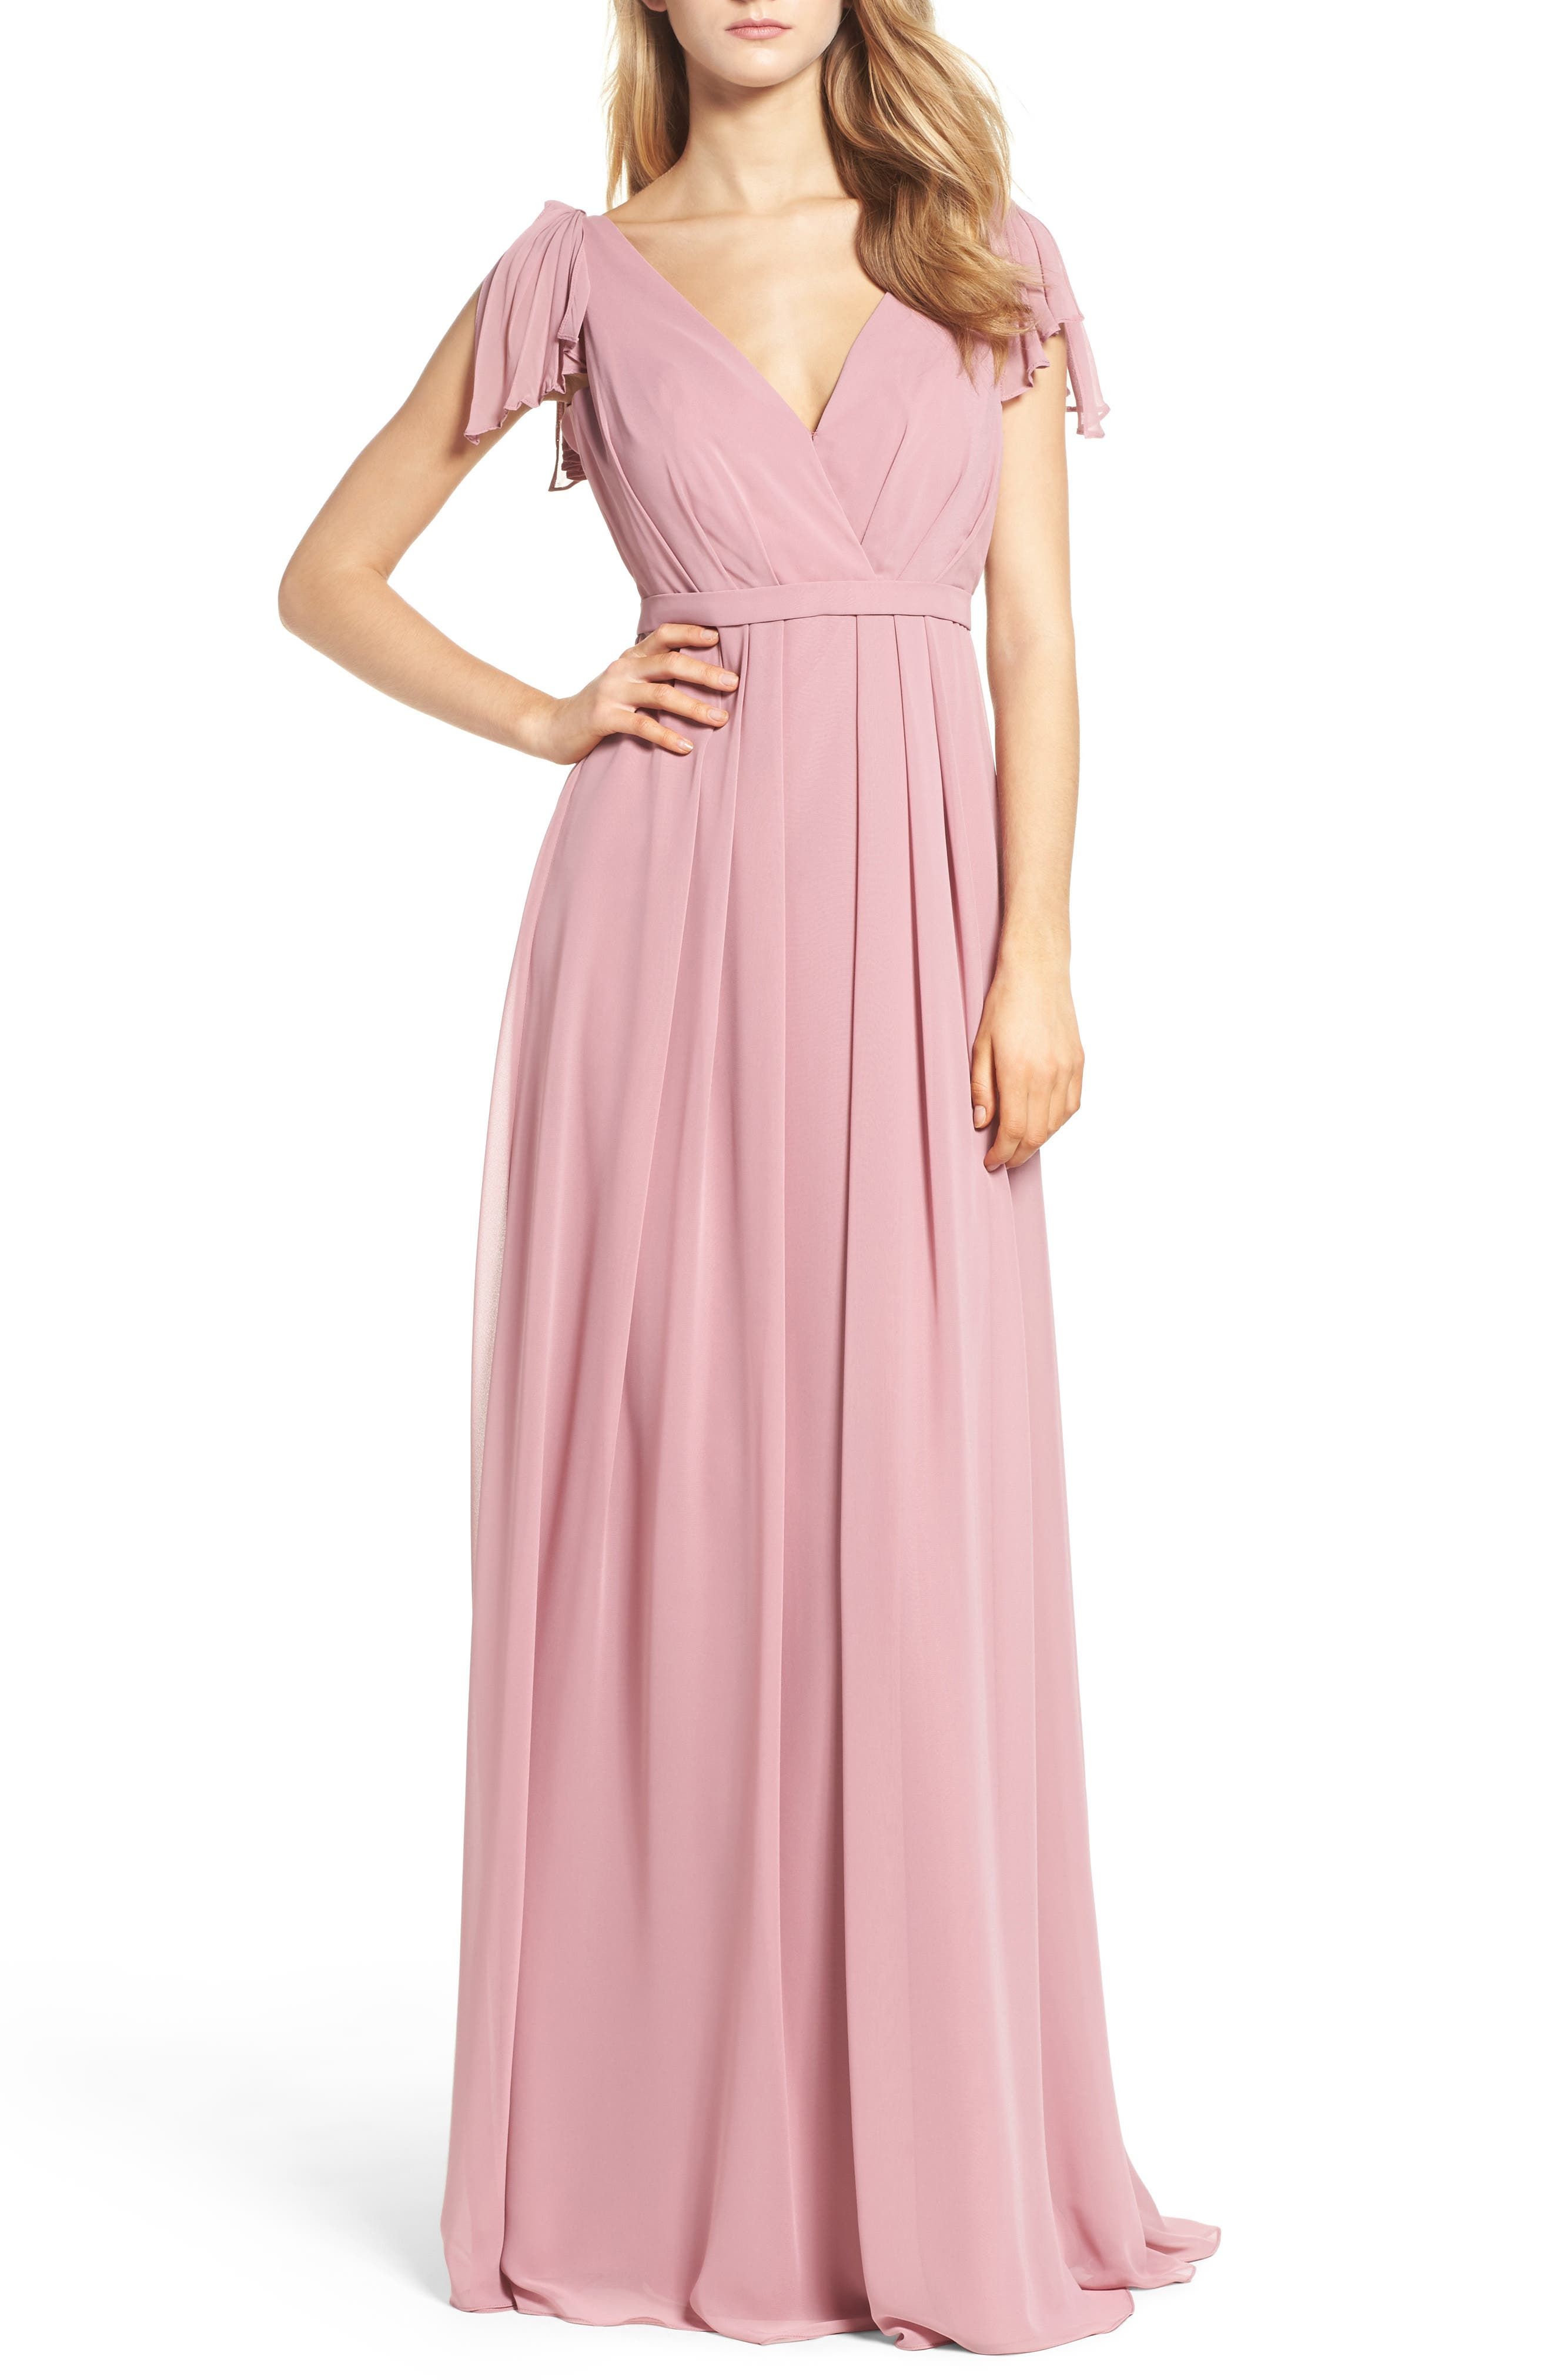 Monique Lhuillier Bridesmaids Sleeveless Deep V-Neck Chiffon Gown (Nordstrom Exclusive)